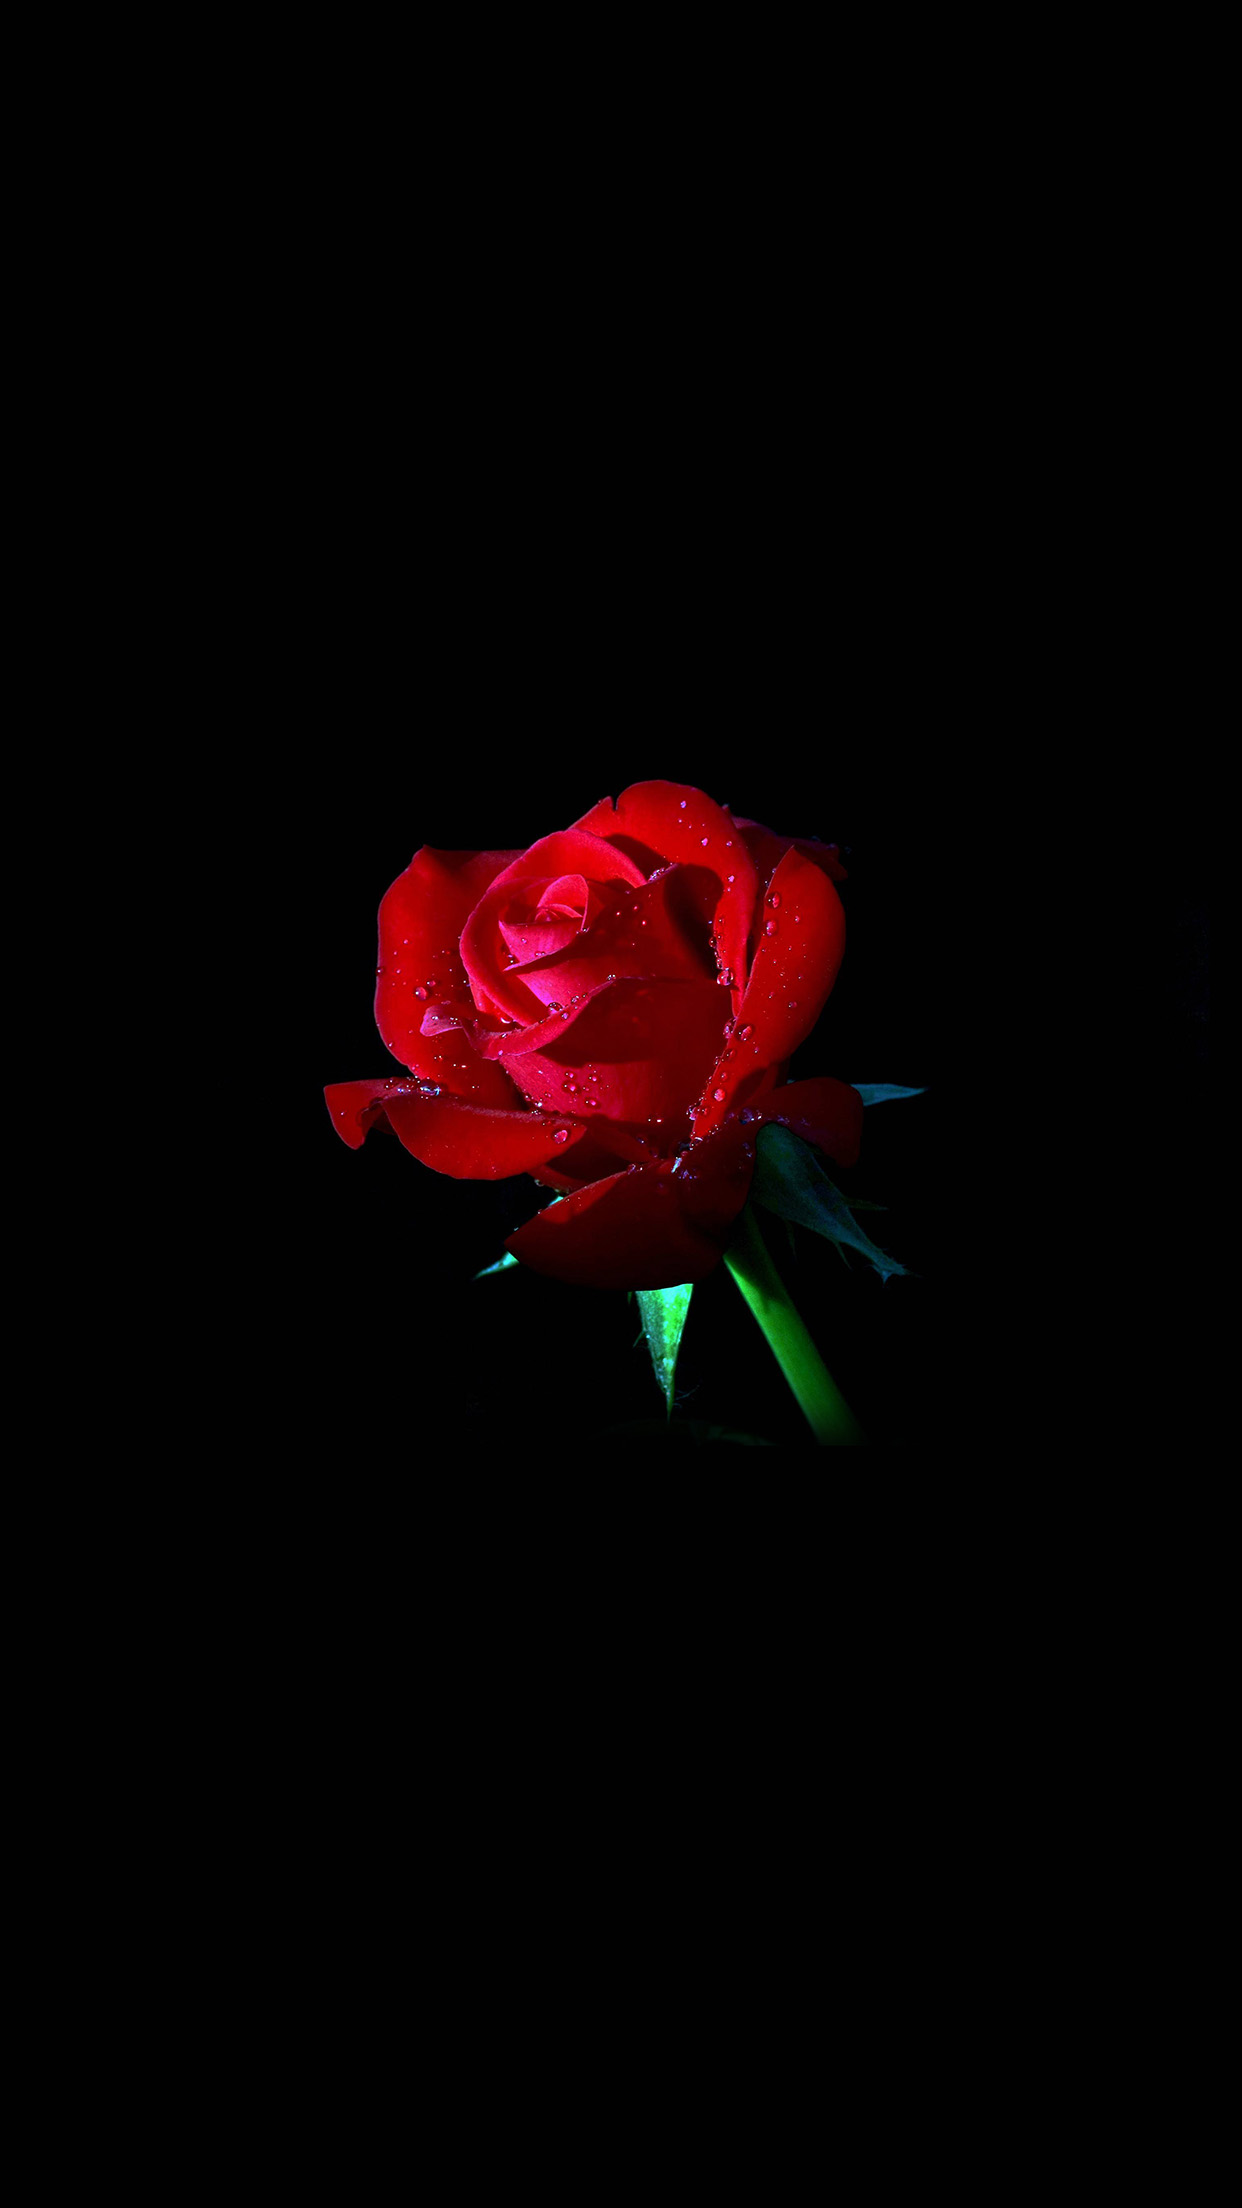 red rose dark flower nature